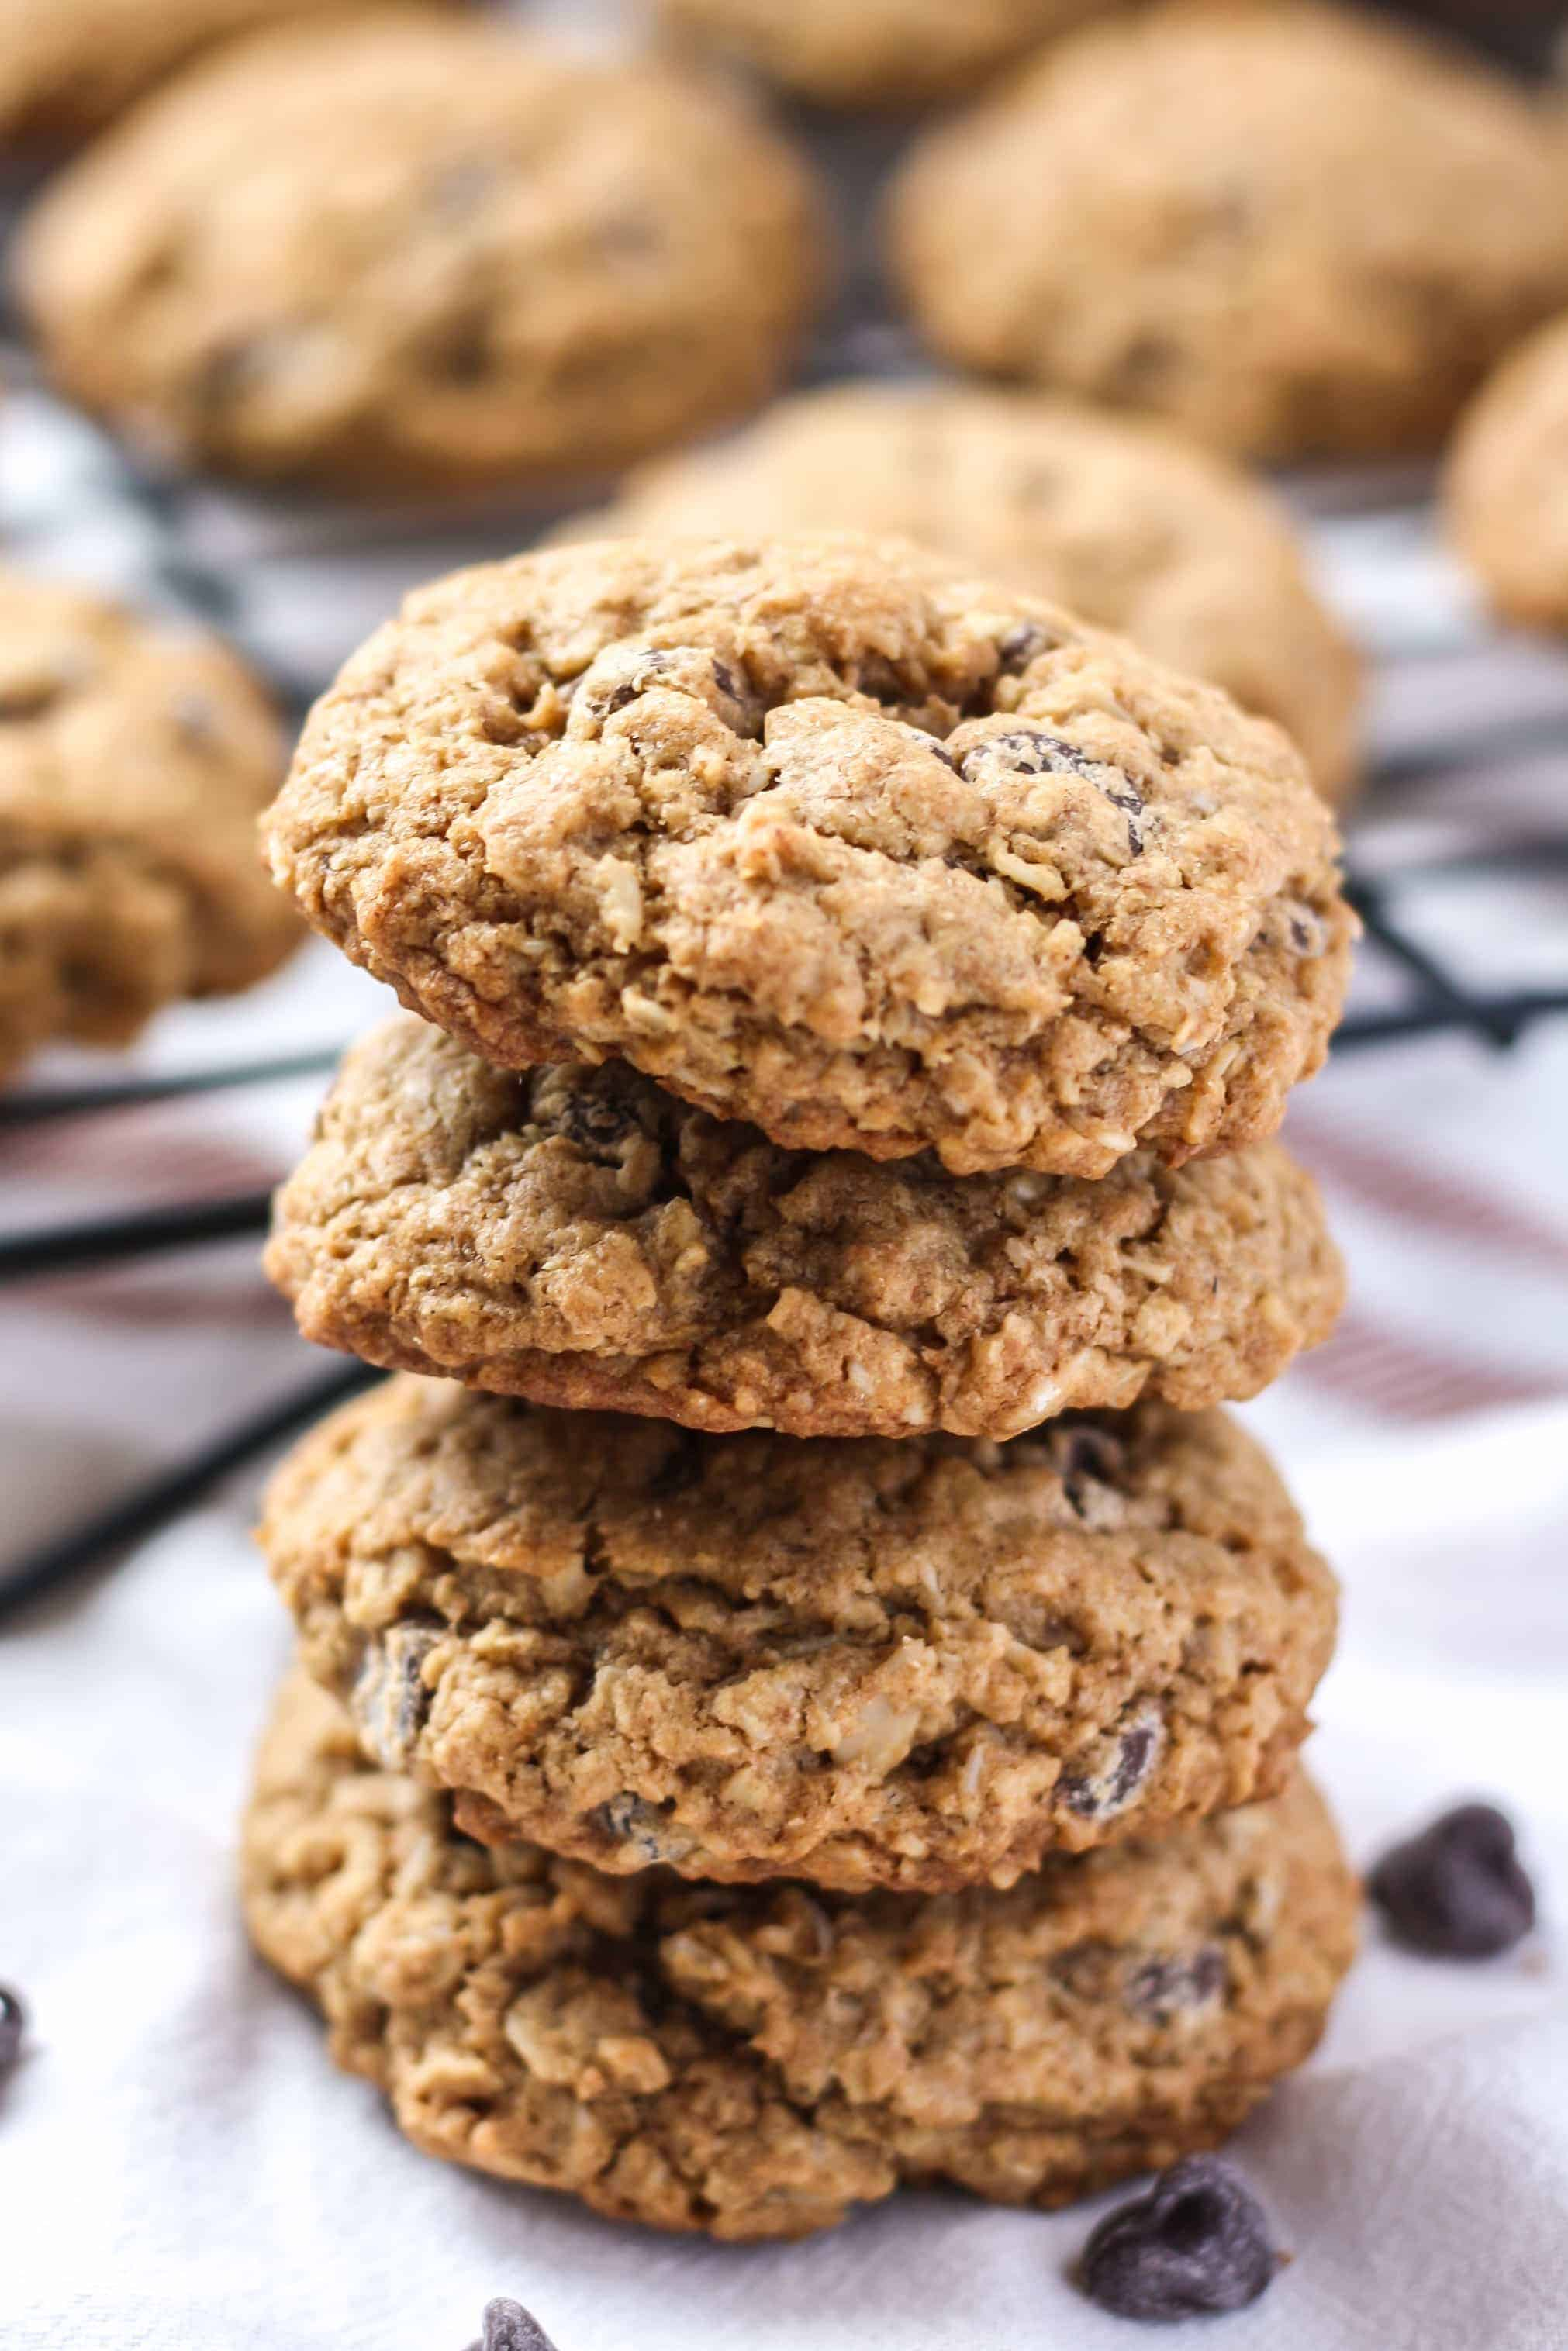 ... and just so flavorful! Whole Wheat Oatmeal Chocolate Chip Cookies FTW